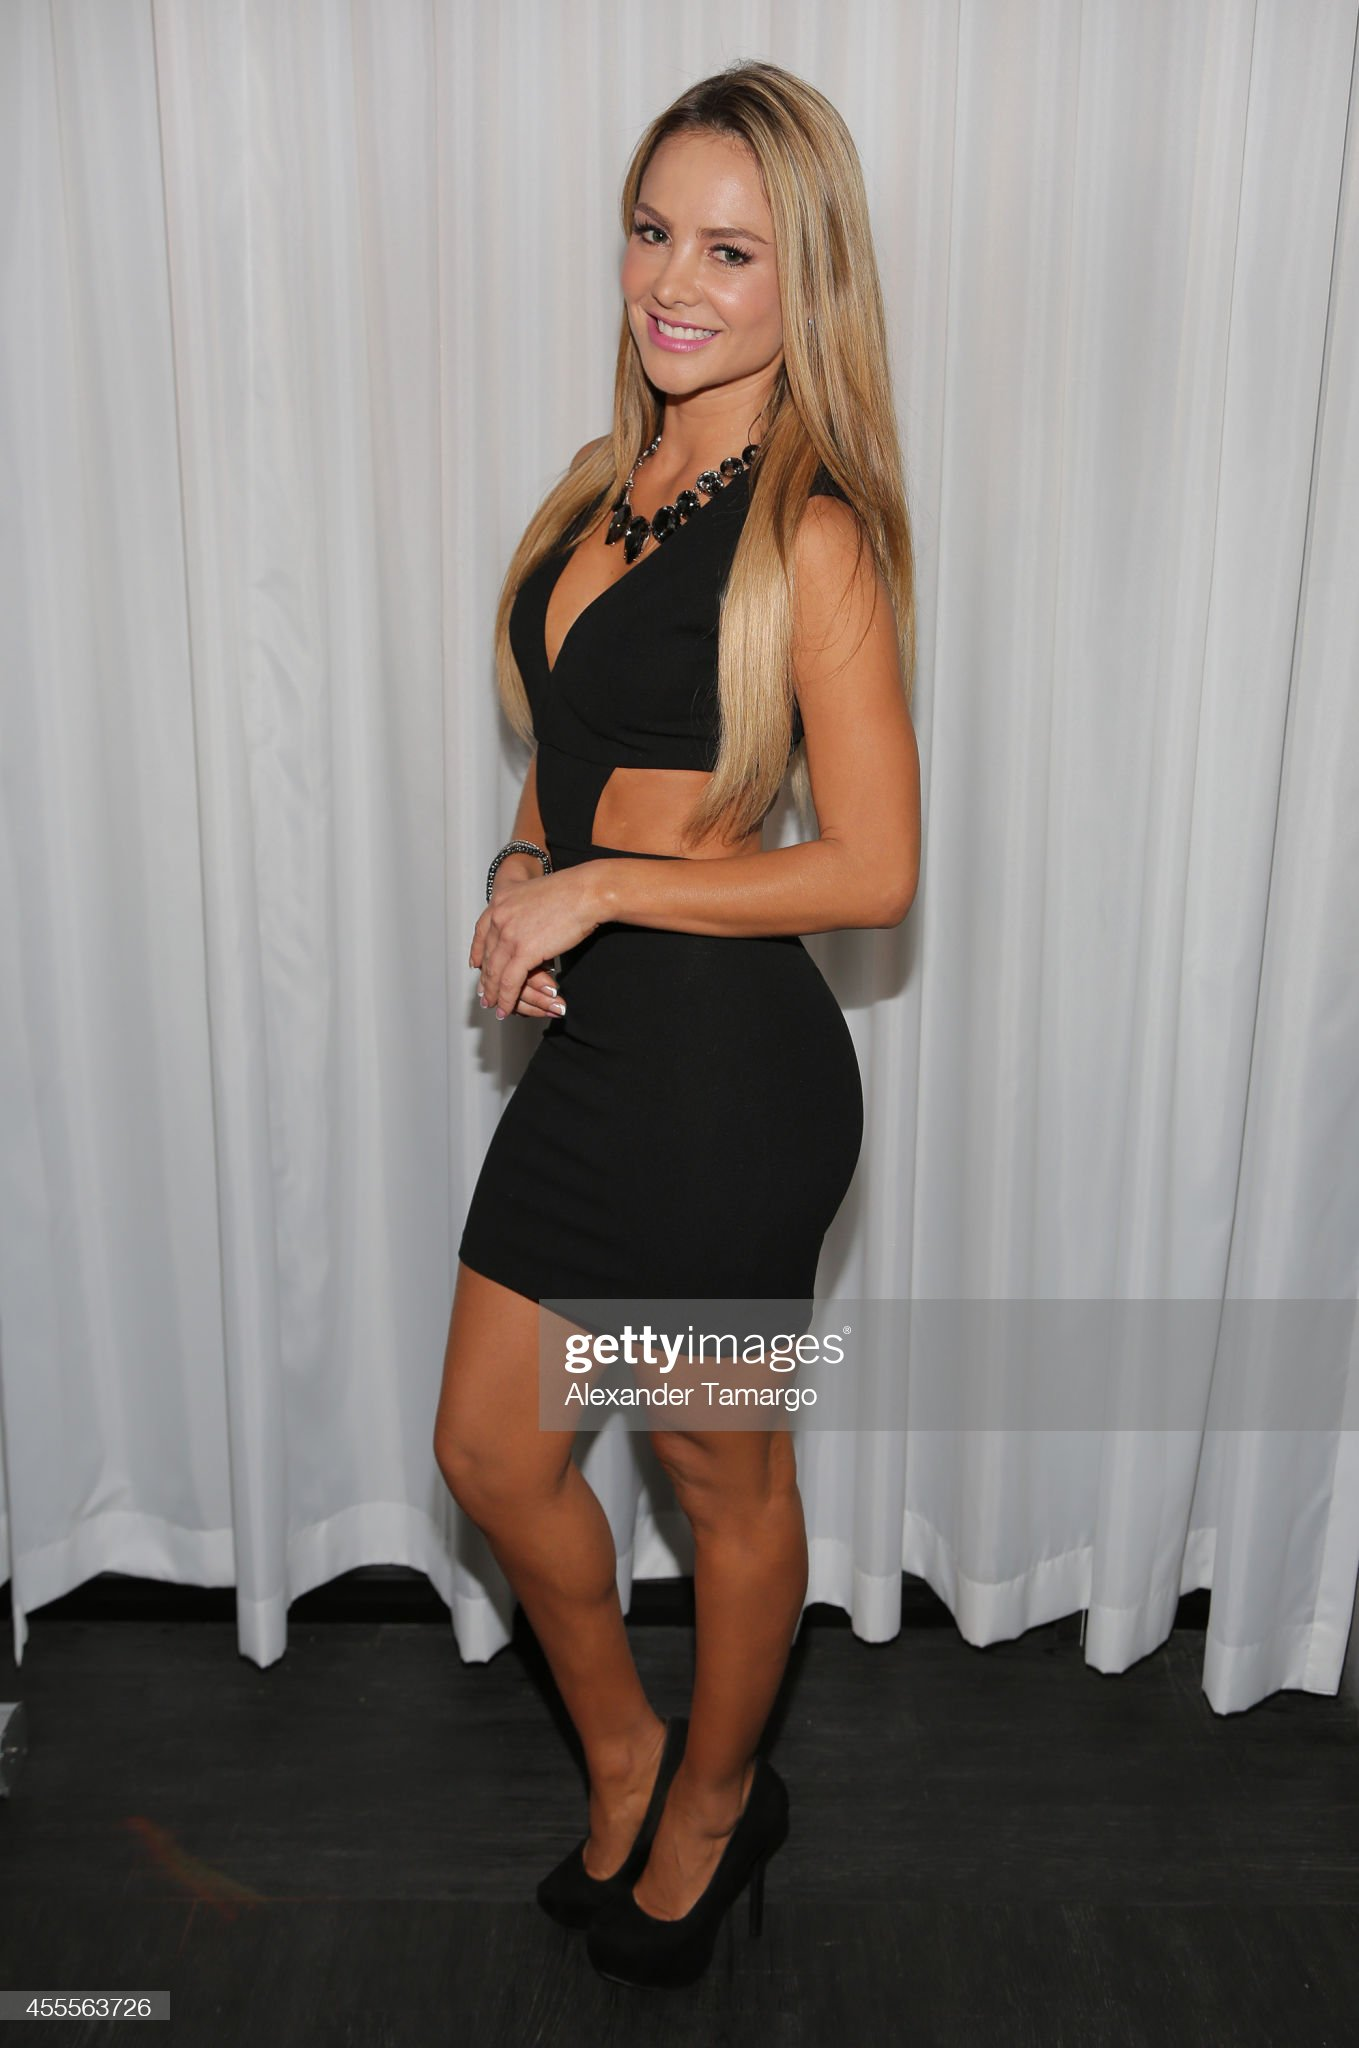 ¿Cuánto mide Ximena Córdoba? - Altura - Real height Ximena-cordoba-attends-the-israel-ministry-of-tourism-reception-at-picture-id455563726?s=2048x2048